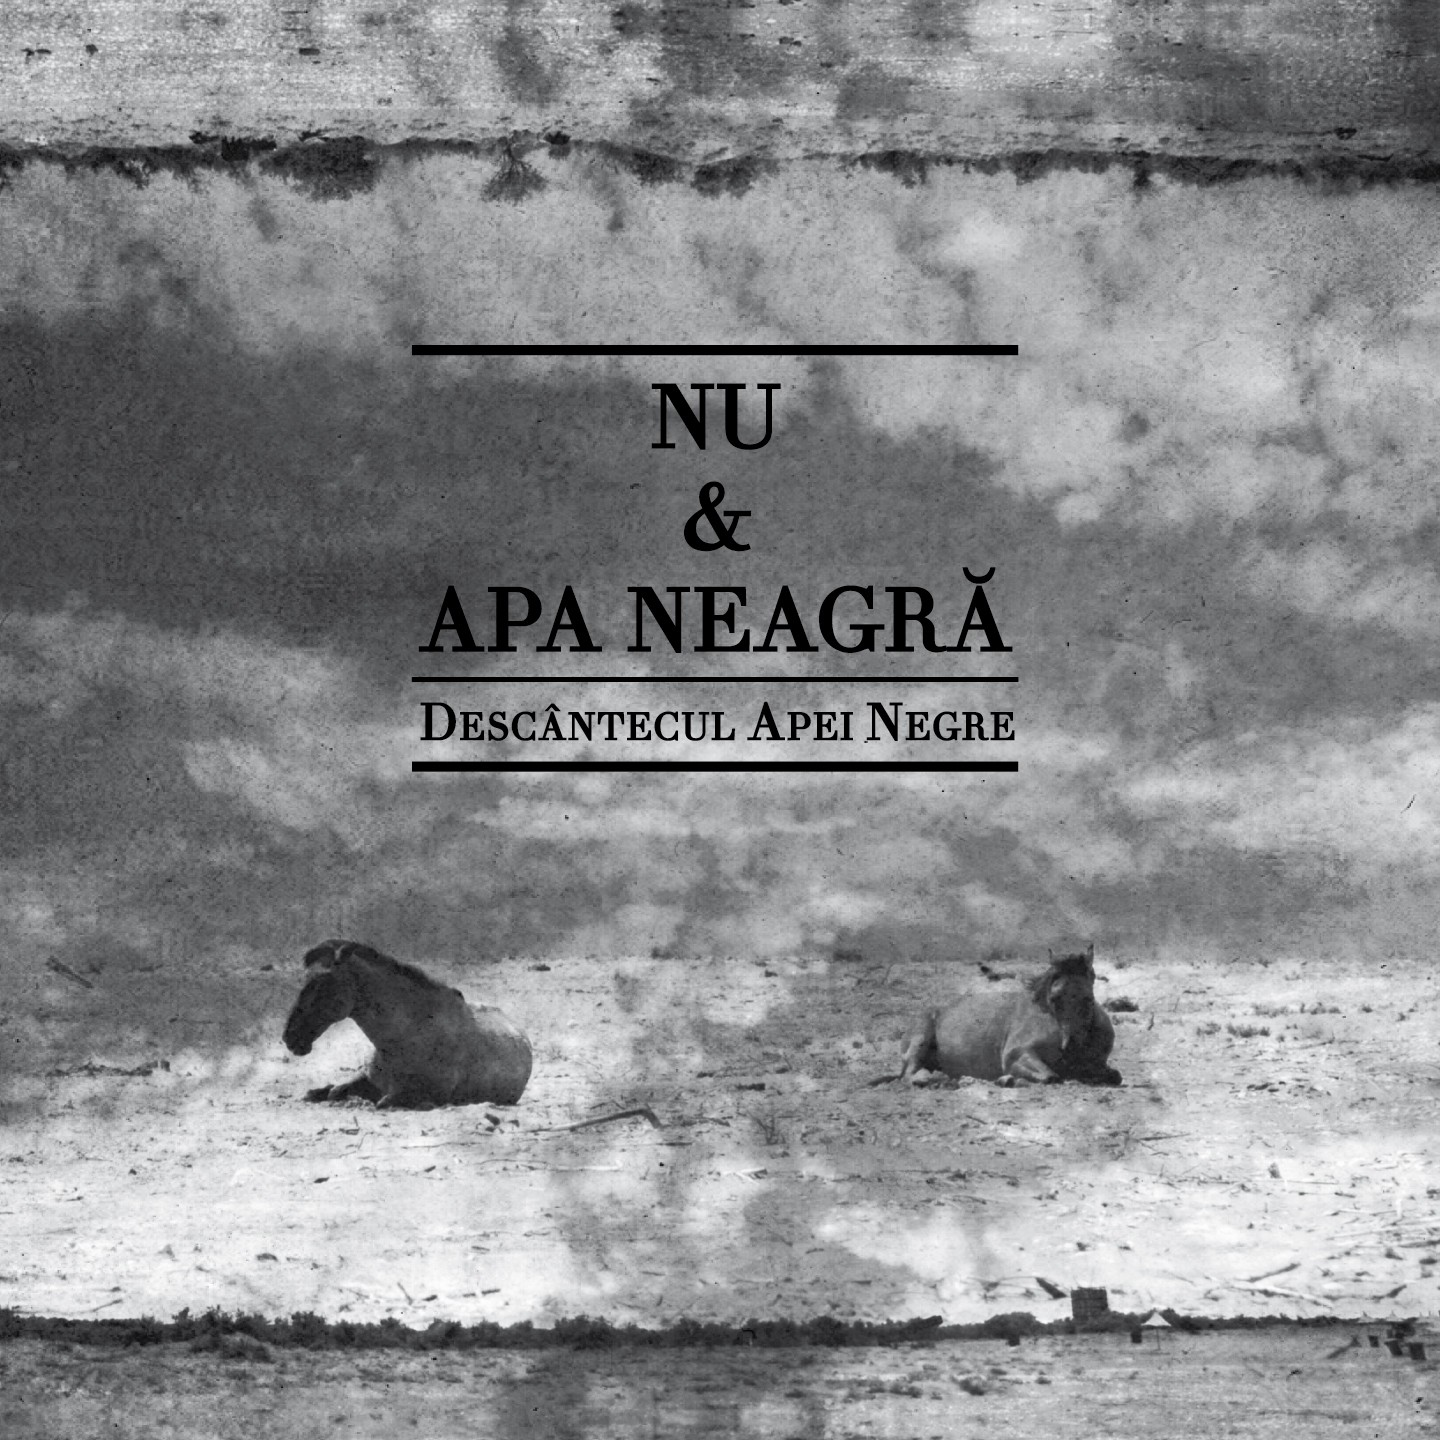 Nu & Apa Neagra Descantecul Apei Negre Black Water Incantation